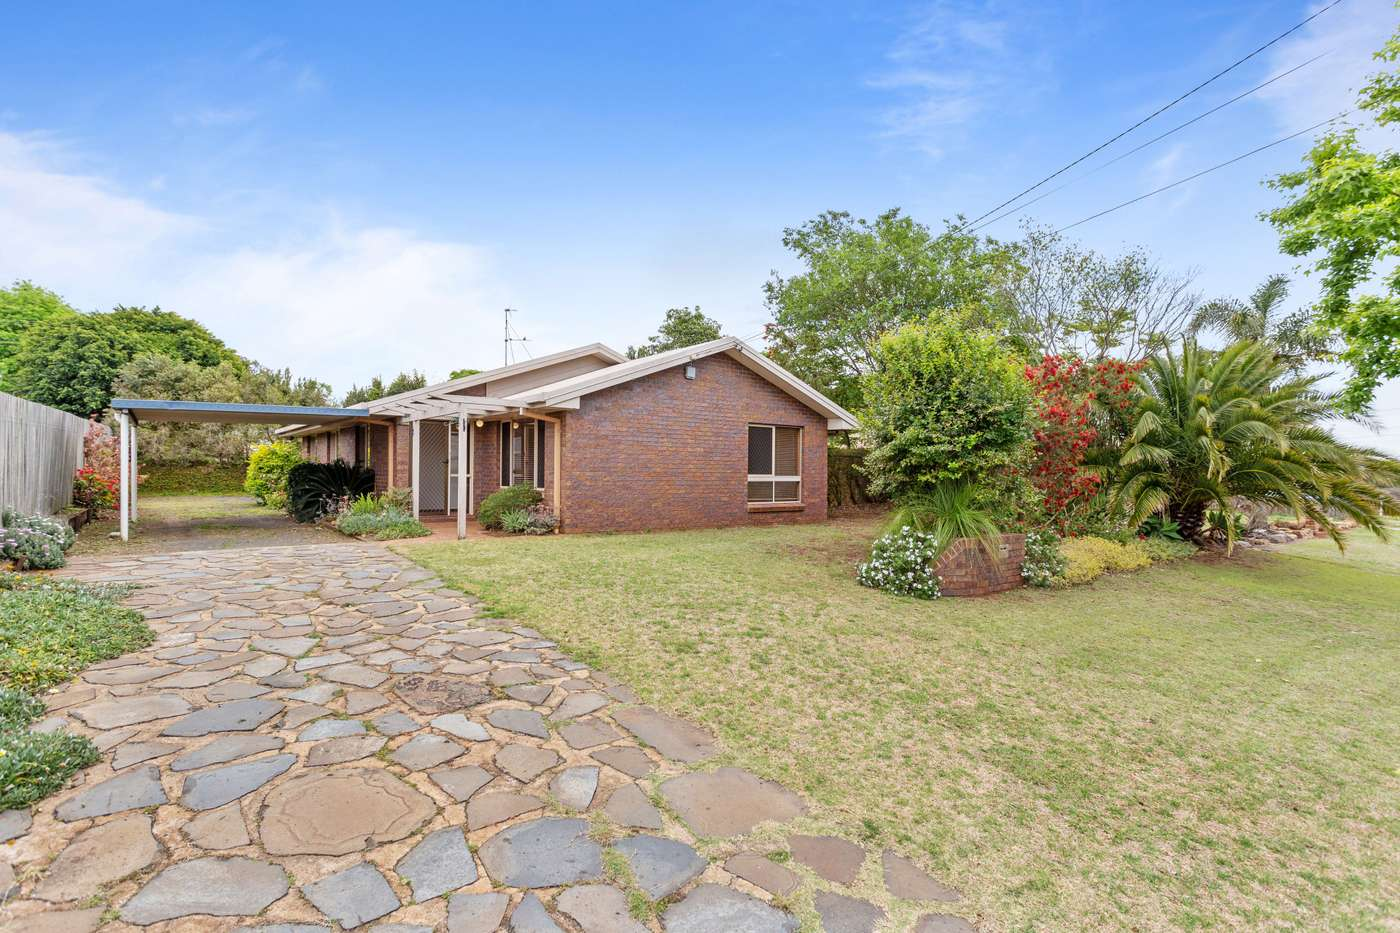 Main view of Homely house listing, 41 Broadfoot Street, Kearneys Spring, QLD 4350